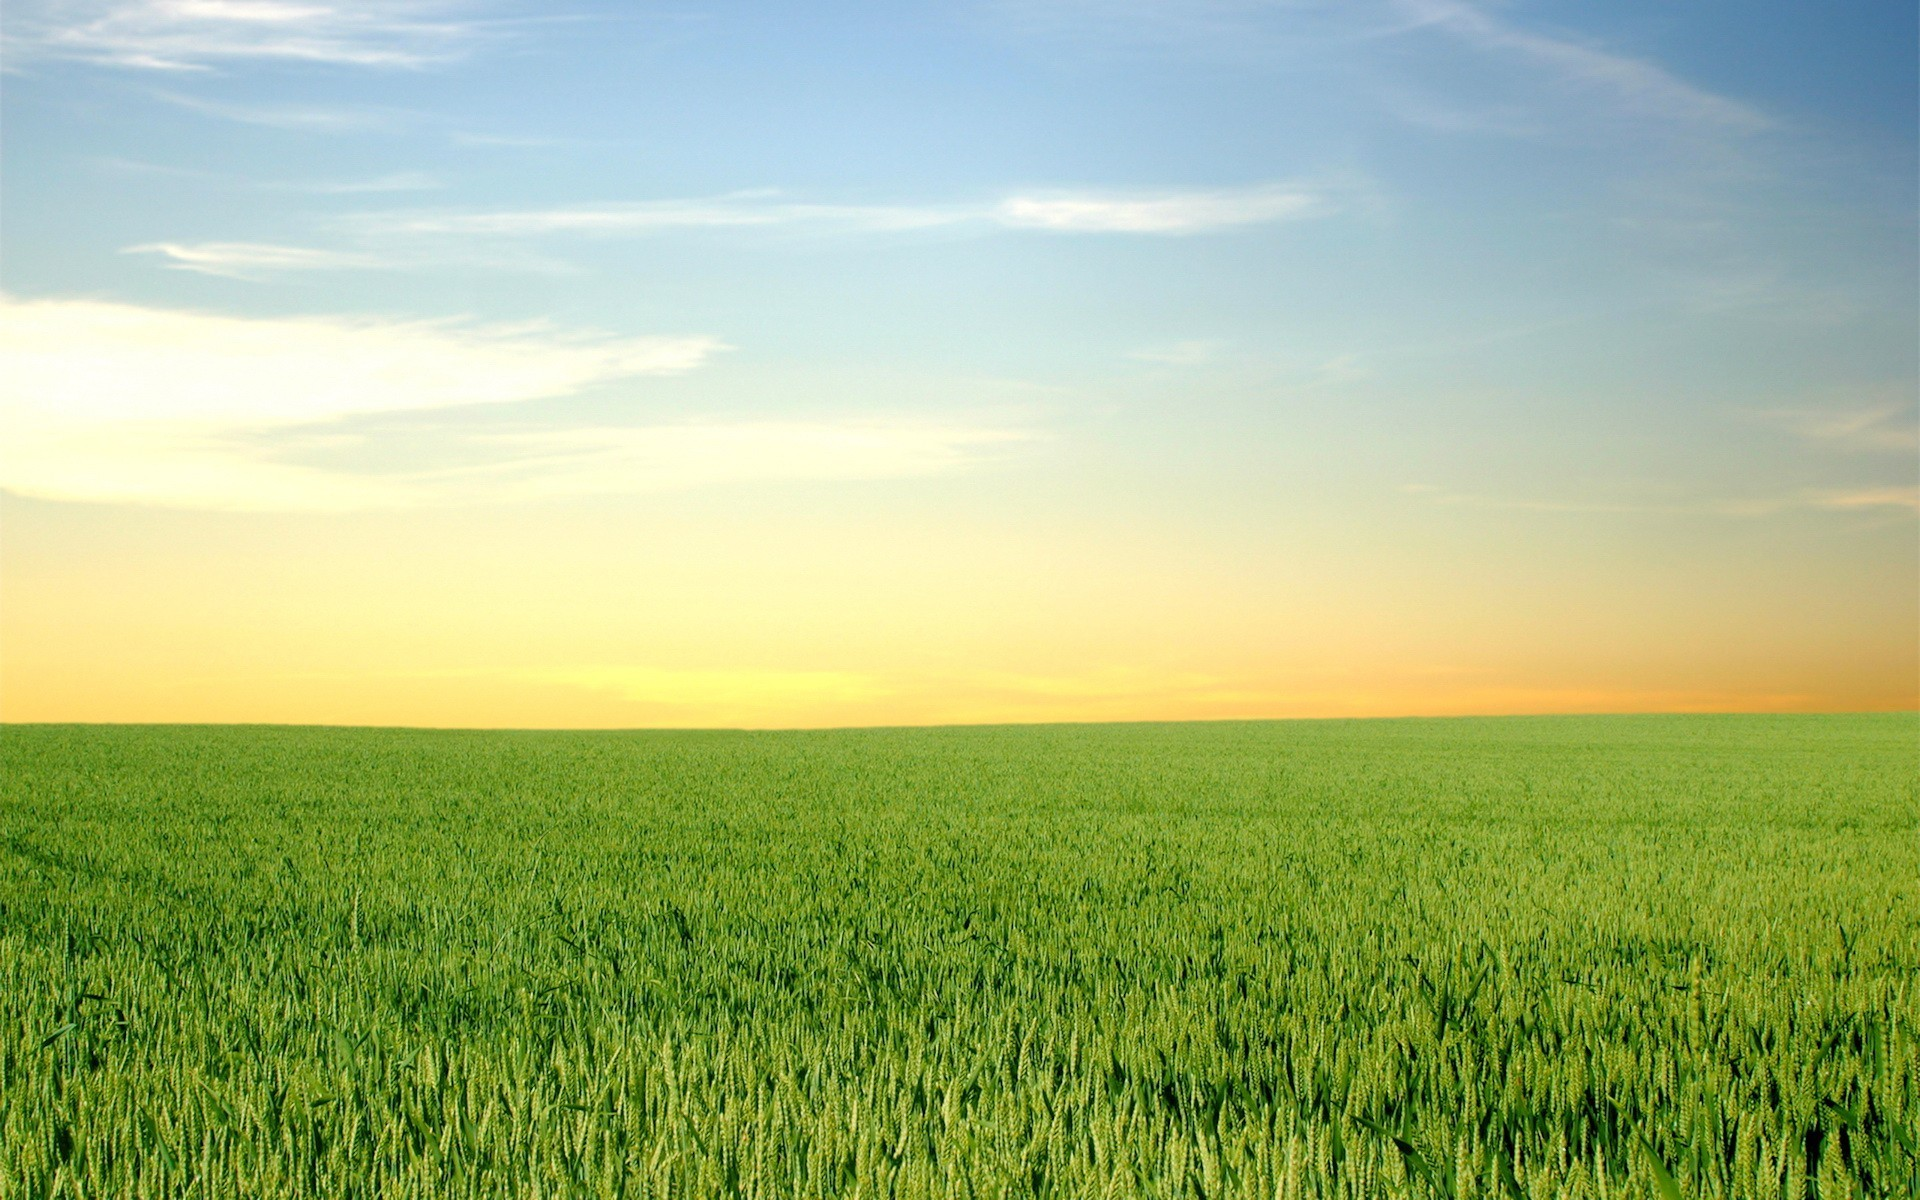 Daily Wallpaper: Green Fields And Blue Skies